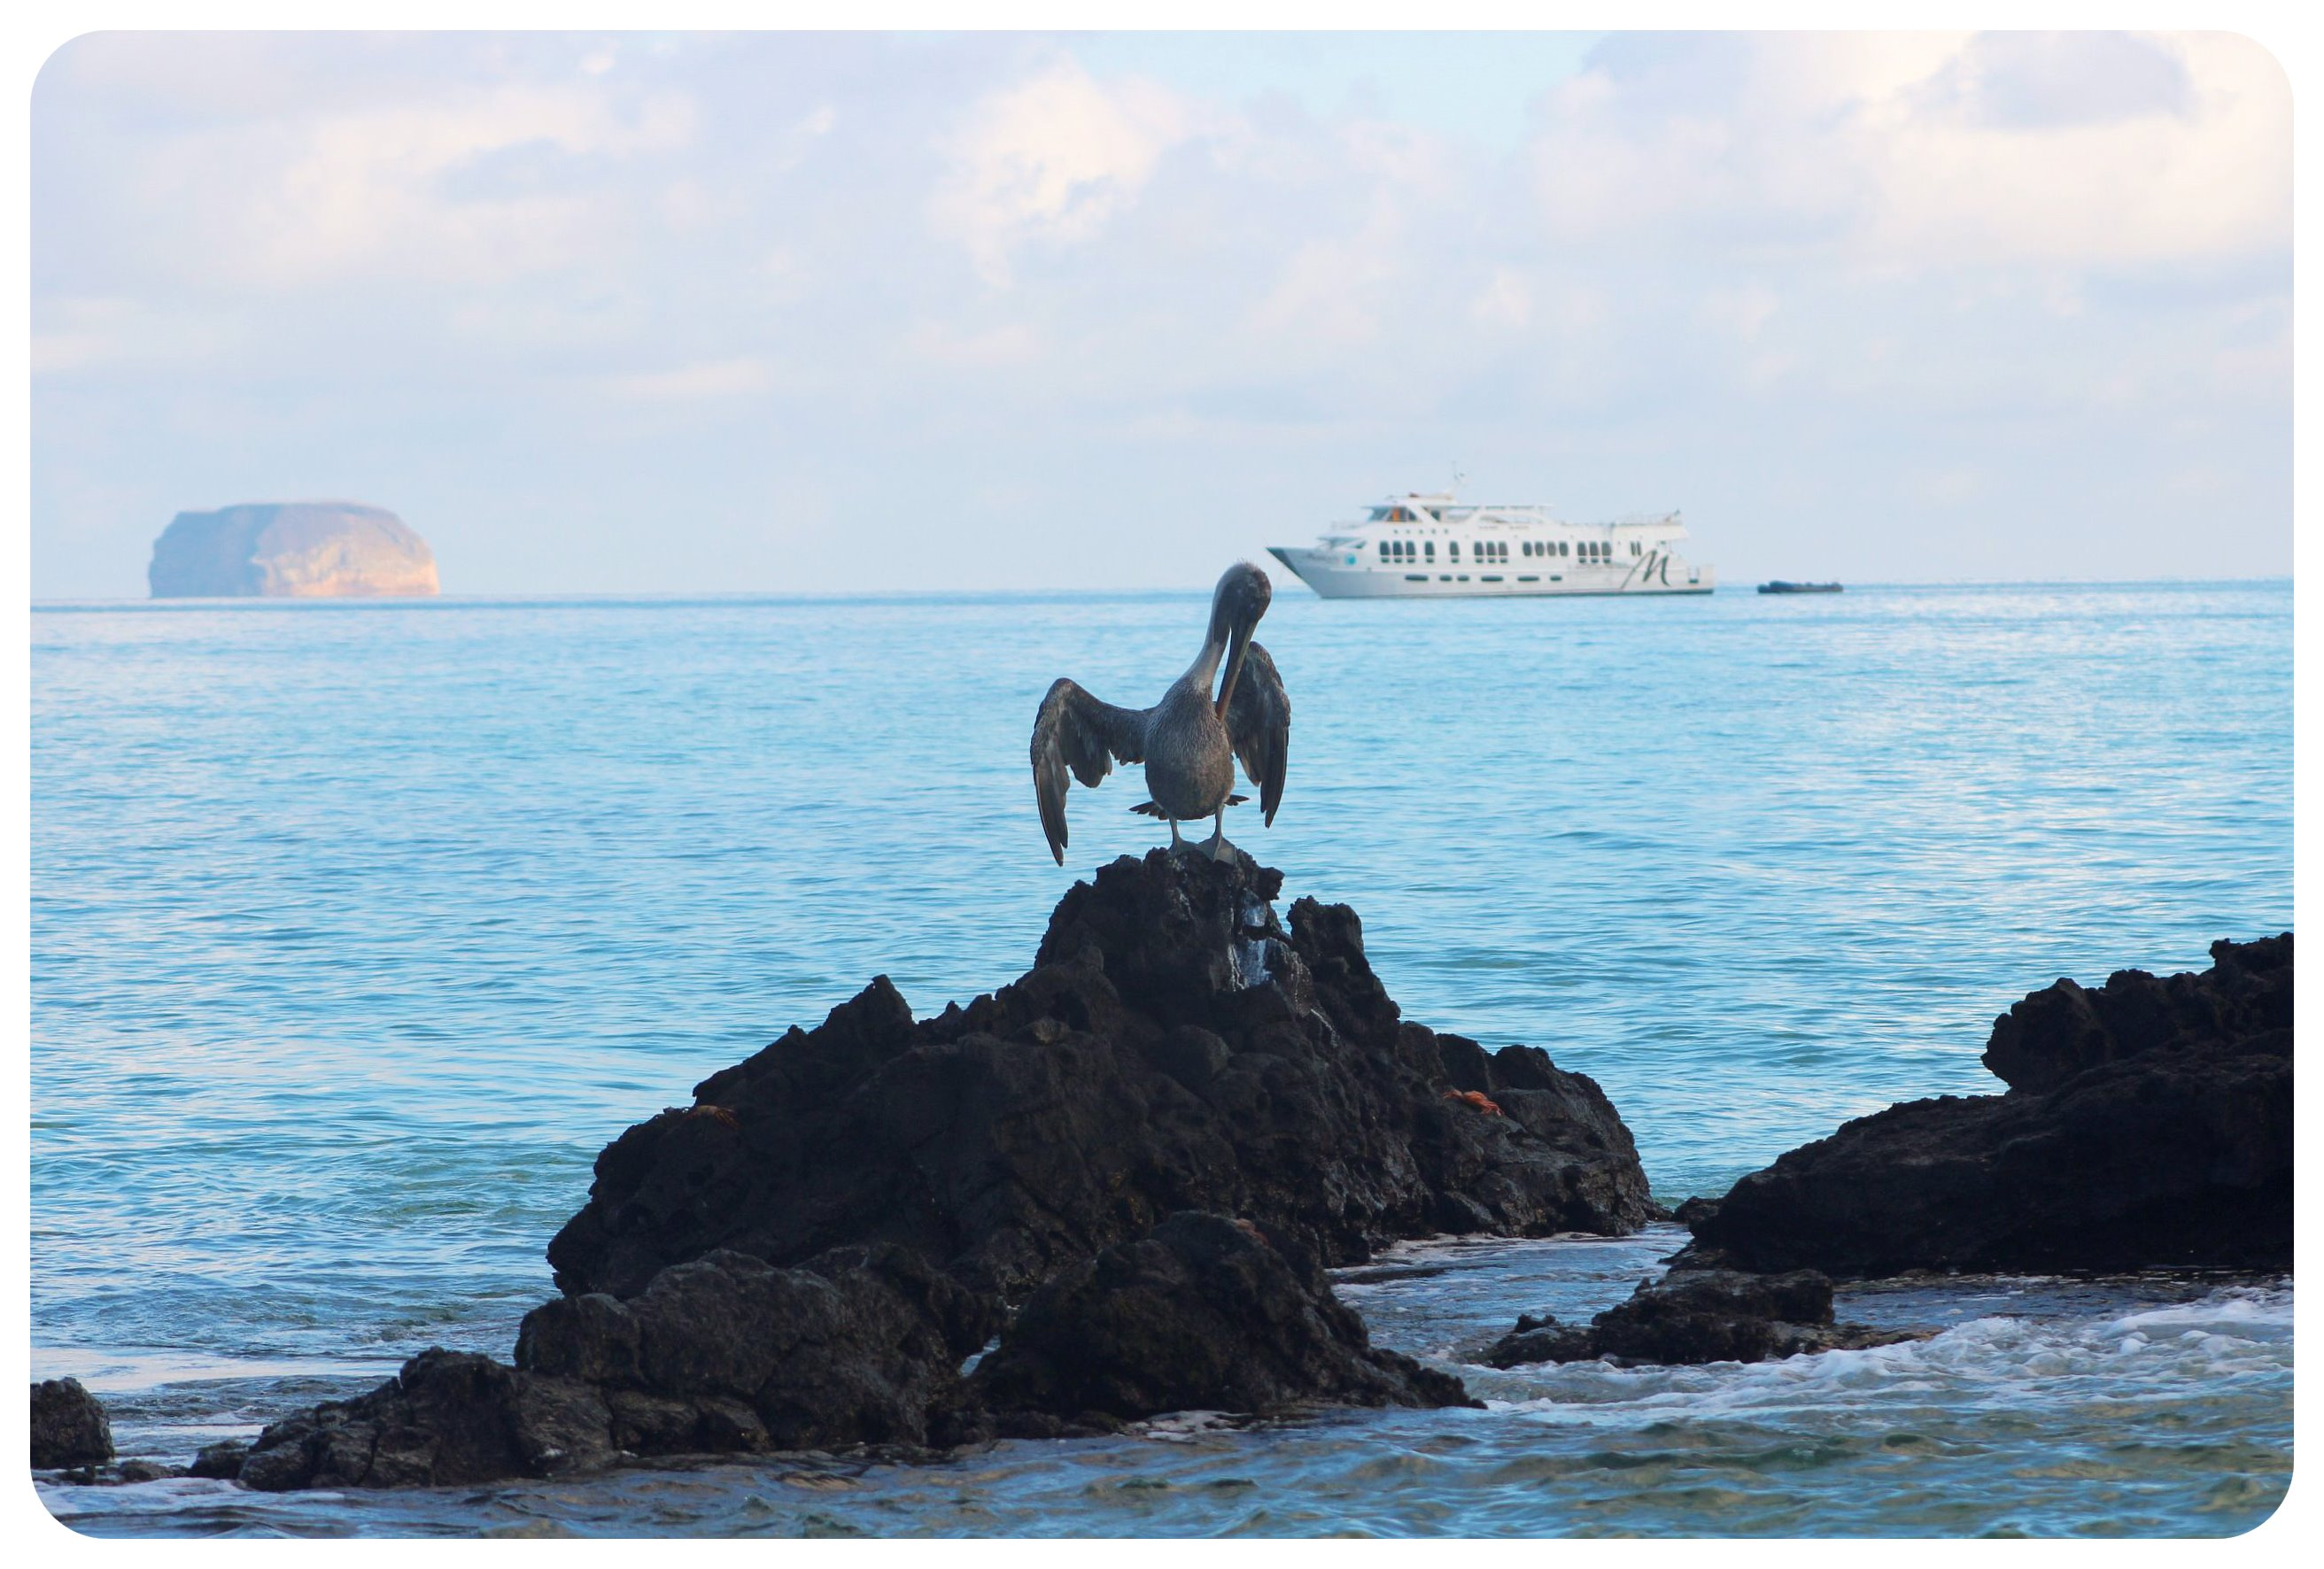 pelican and majestic yacht